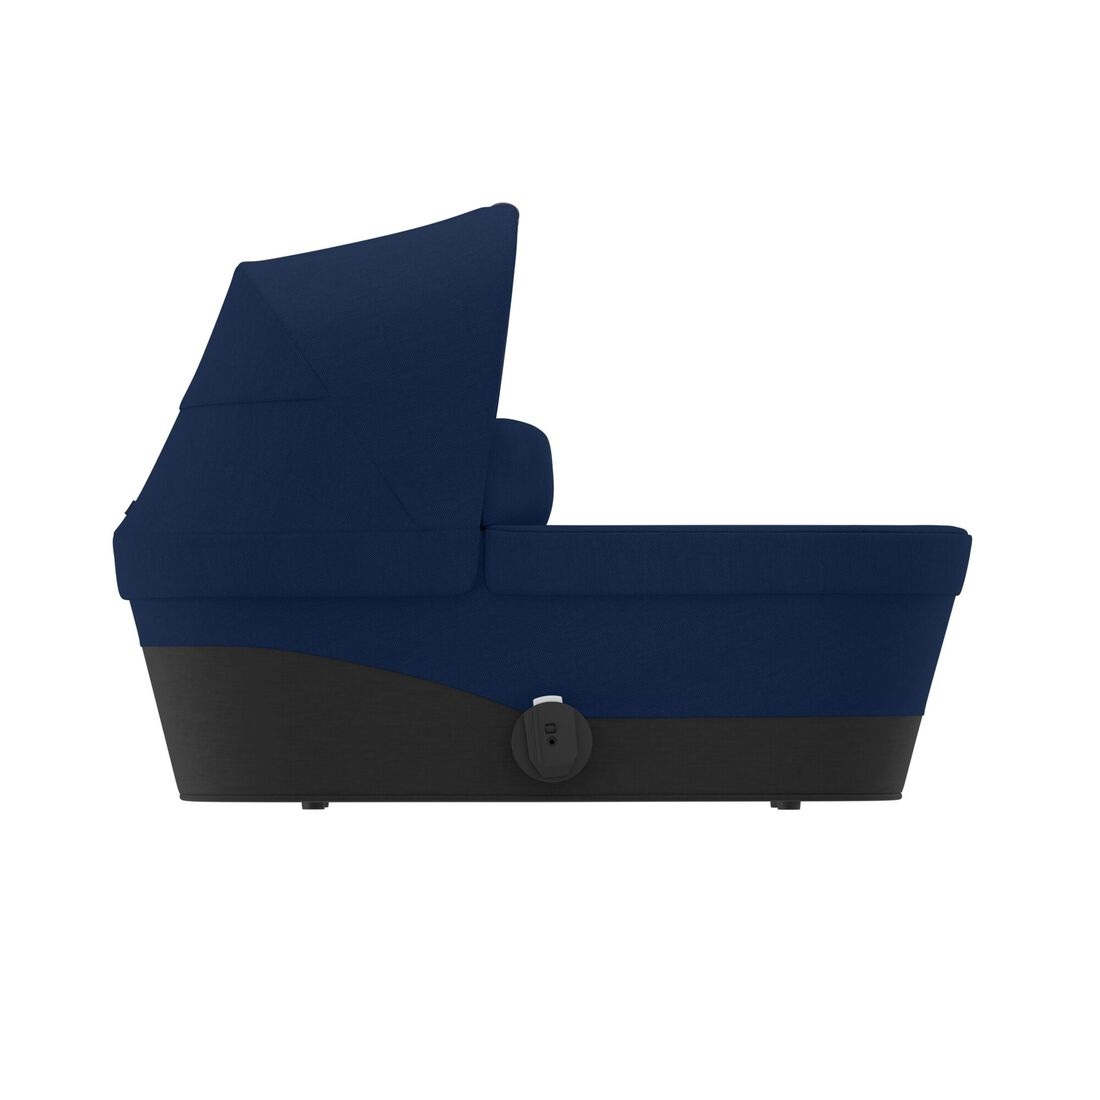 CYBEX Gazelle S Cot - Navy Blue in Navy Blue large image number 3